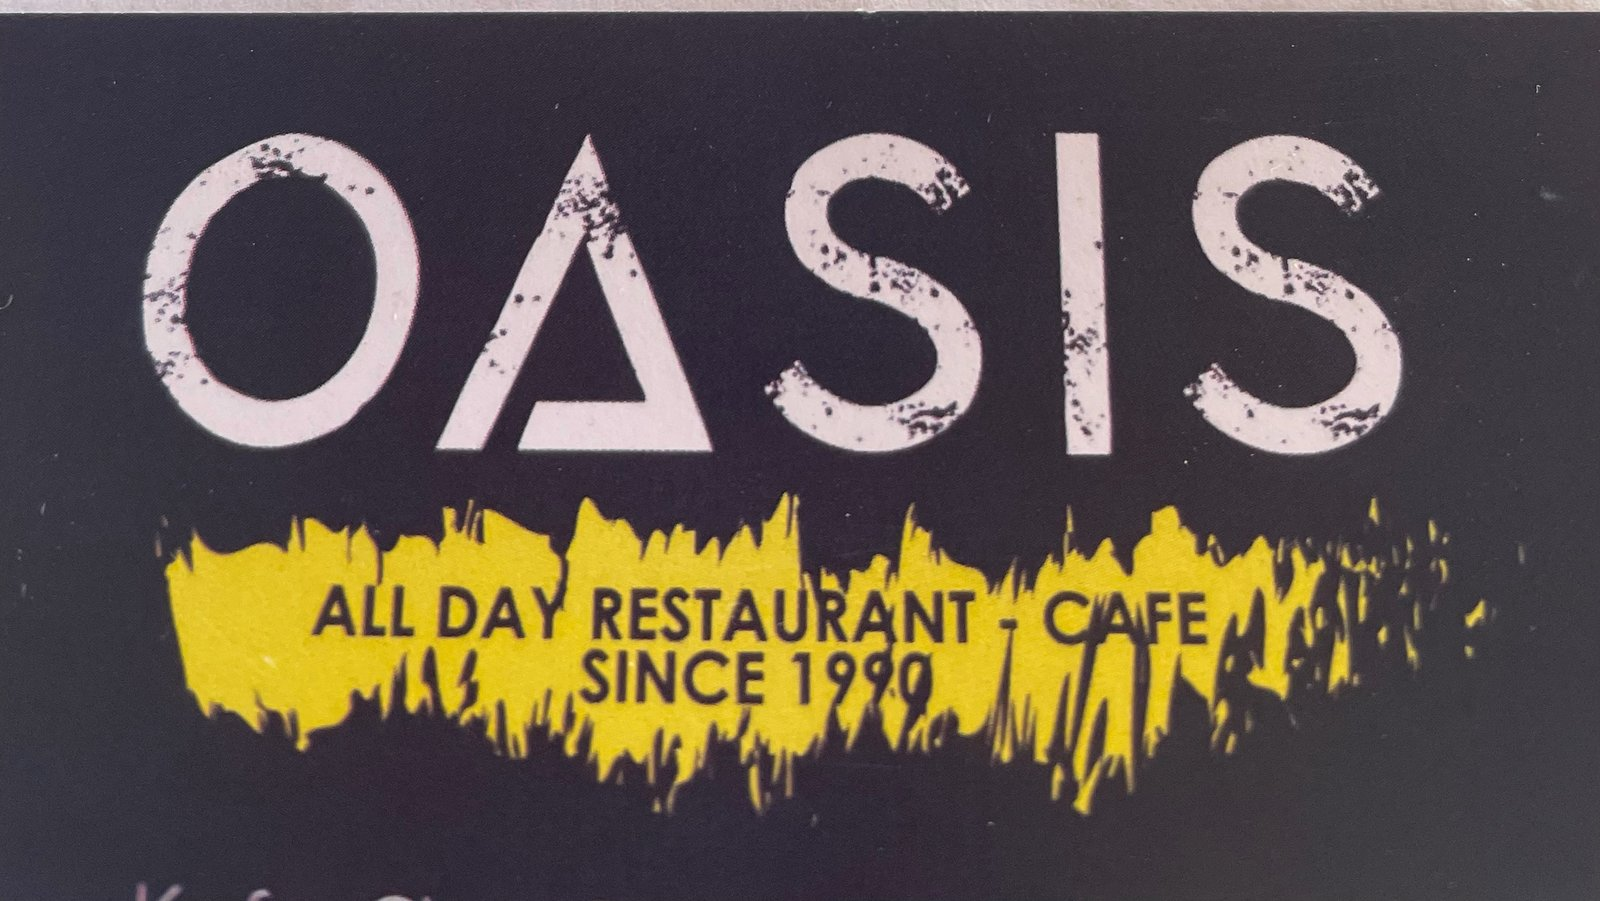 Oasis All Day Restaurant Cafe